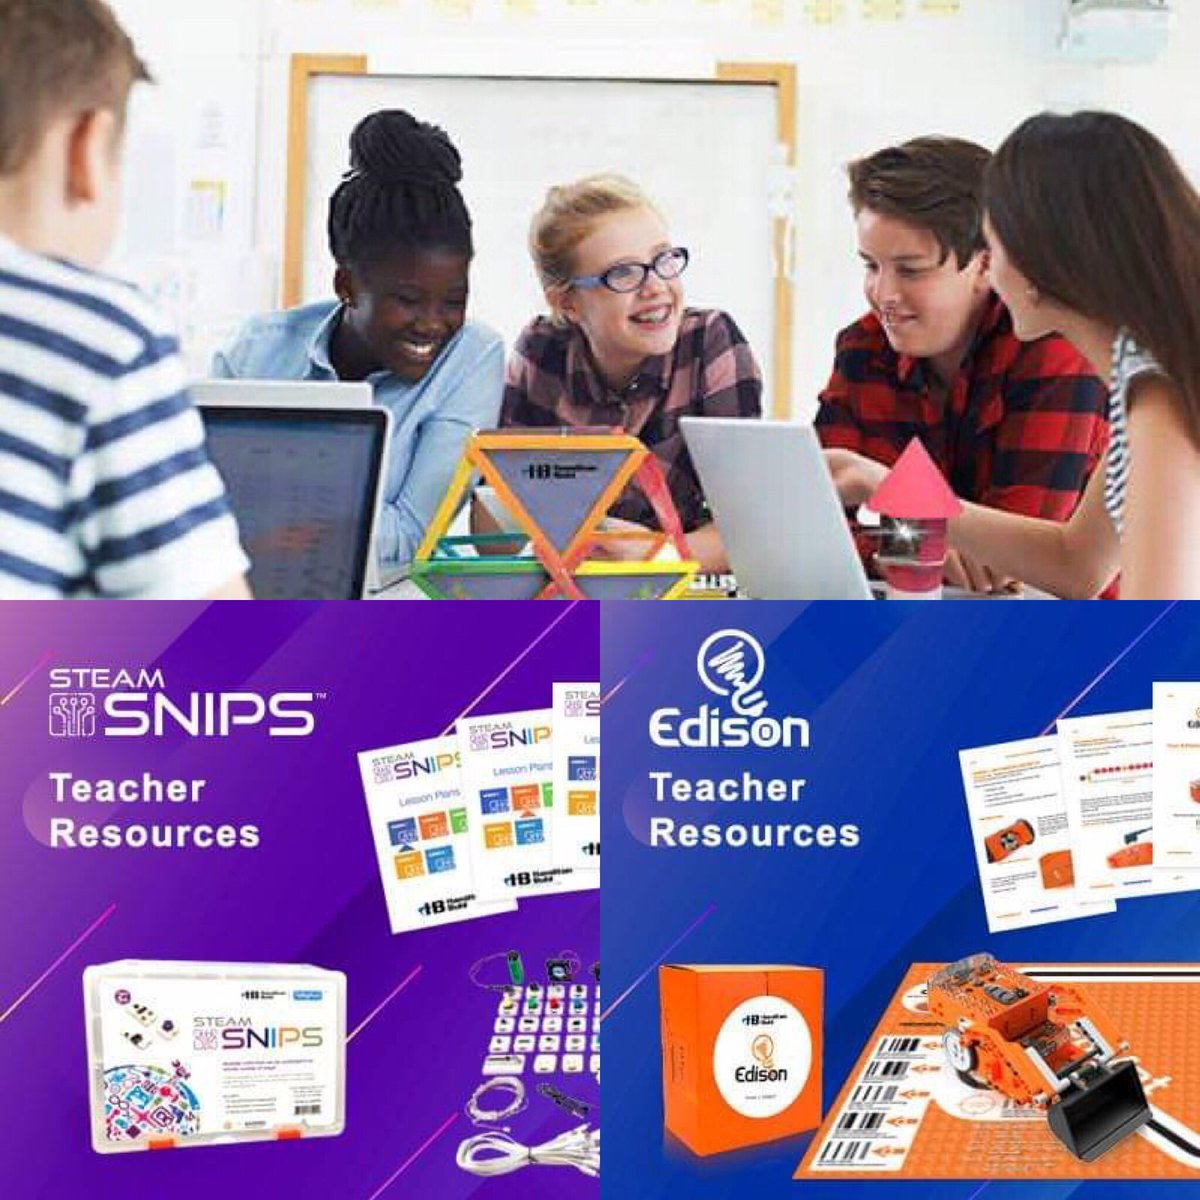 Feel confident introducing new #STEAM #learning products to your students...#FREE lesson plans and tutorials with #Hamiltonbuhl STEAM products!  Follow us on social media - stay updated!😀🎧💻 Call 866 926 1669 https://t.co/ZltaYuP212 #education #STEMDirector #curriculumdirector https://t.co/Xl7N6XXyOQ